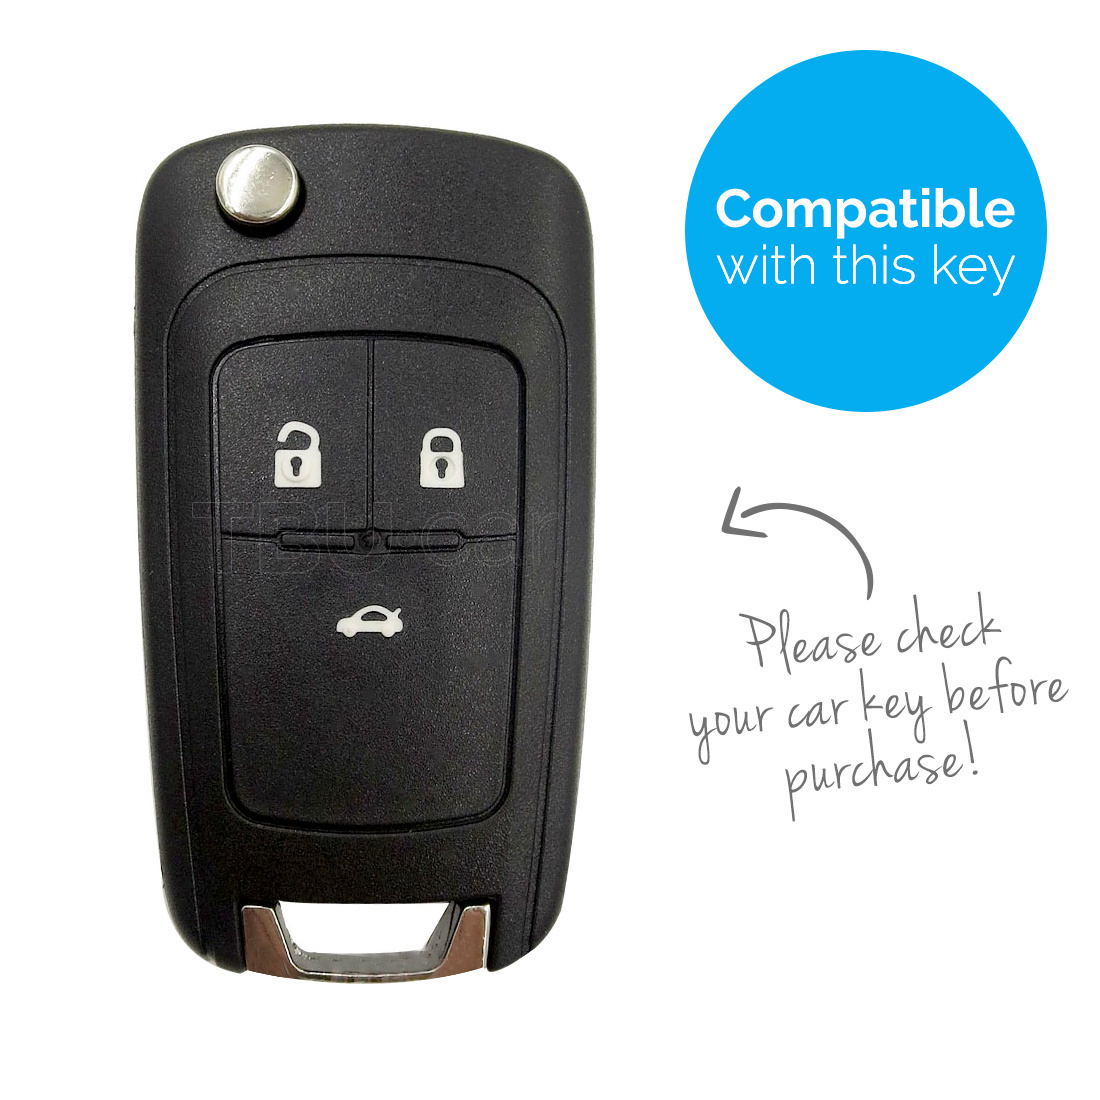 TBU car TBU car Car key cover compatible with Chevrolet - Silicone Protective Remote Key Shell - FOB Case Cover - Black